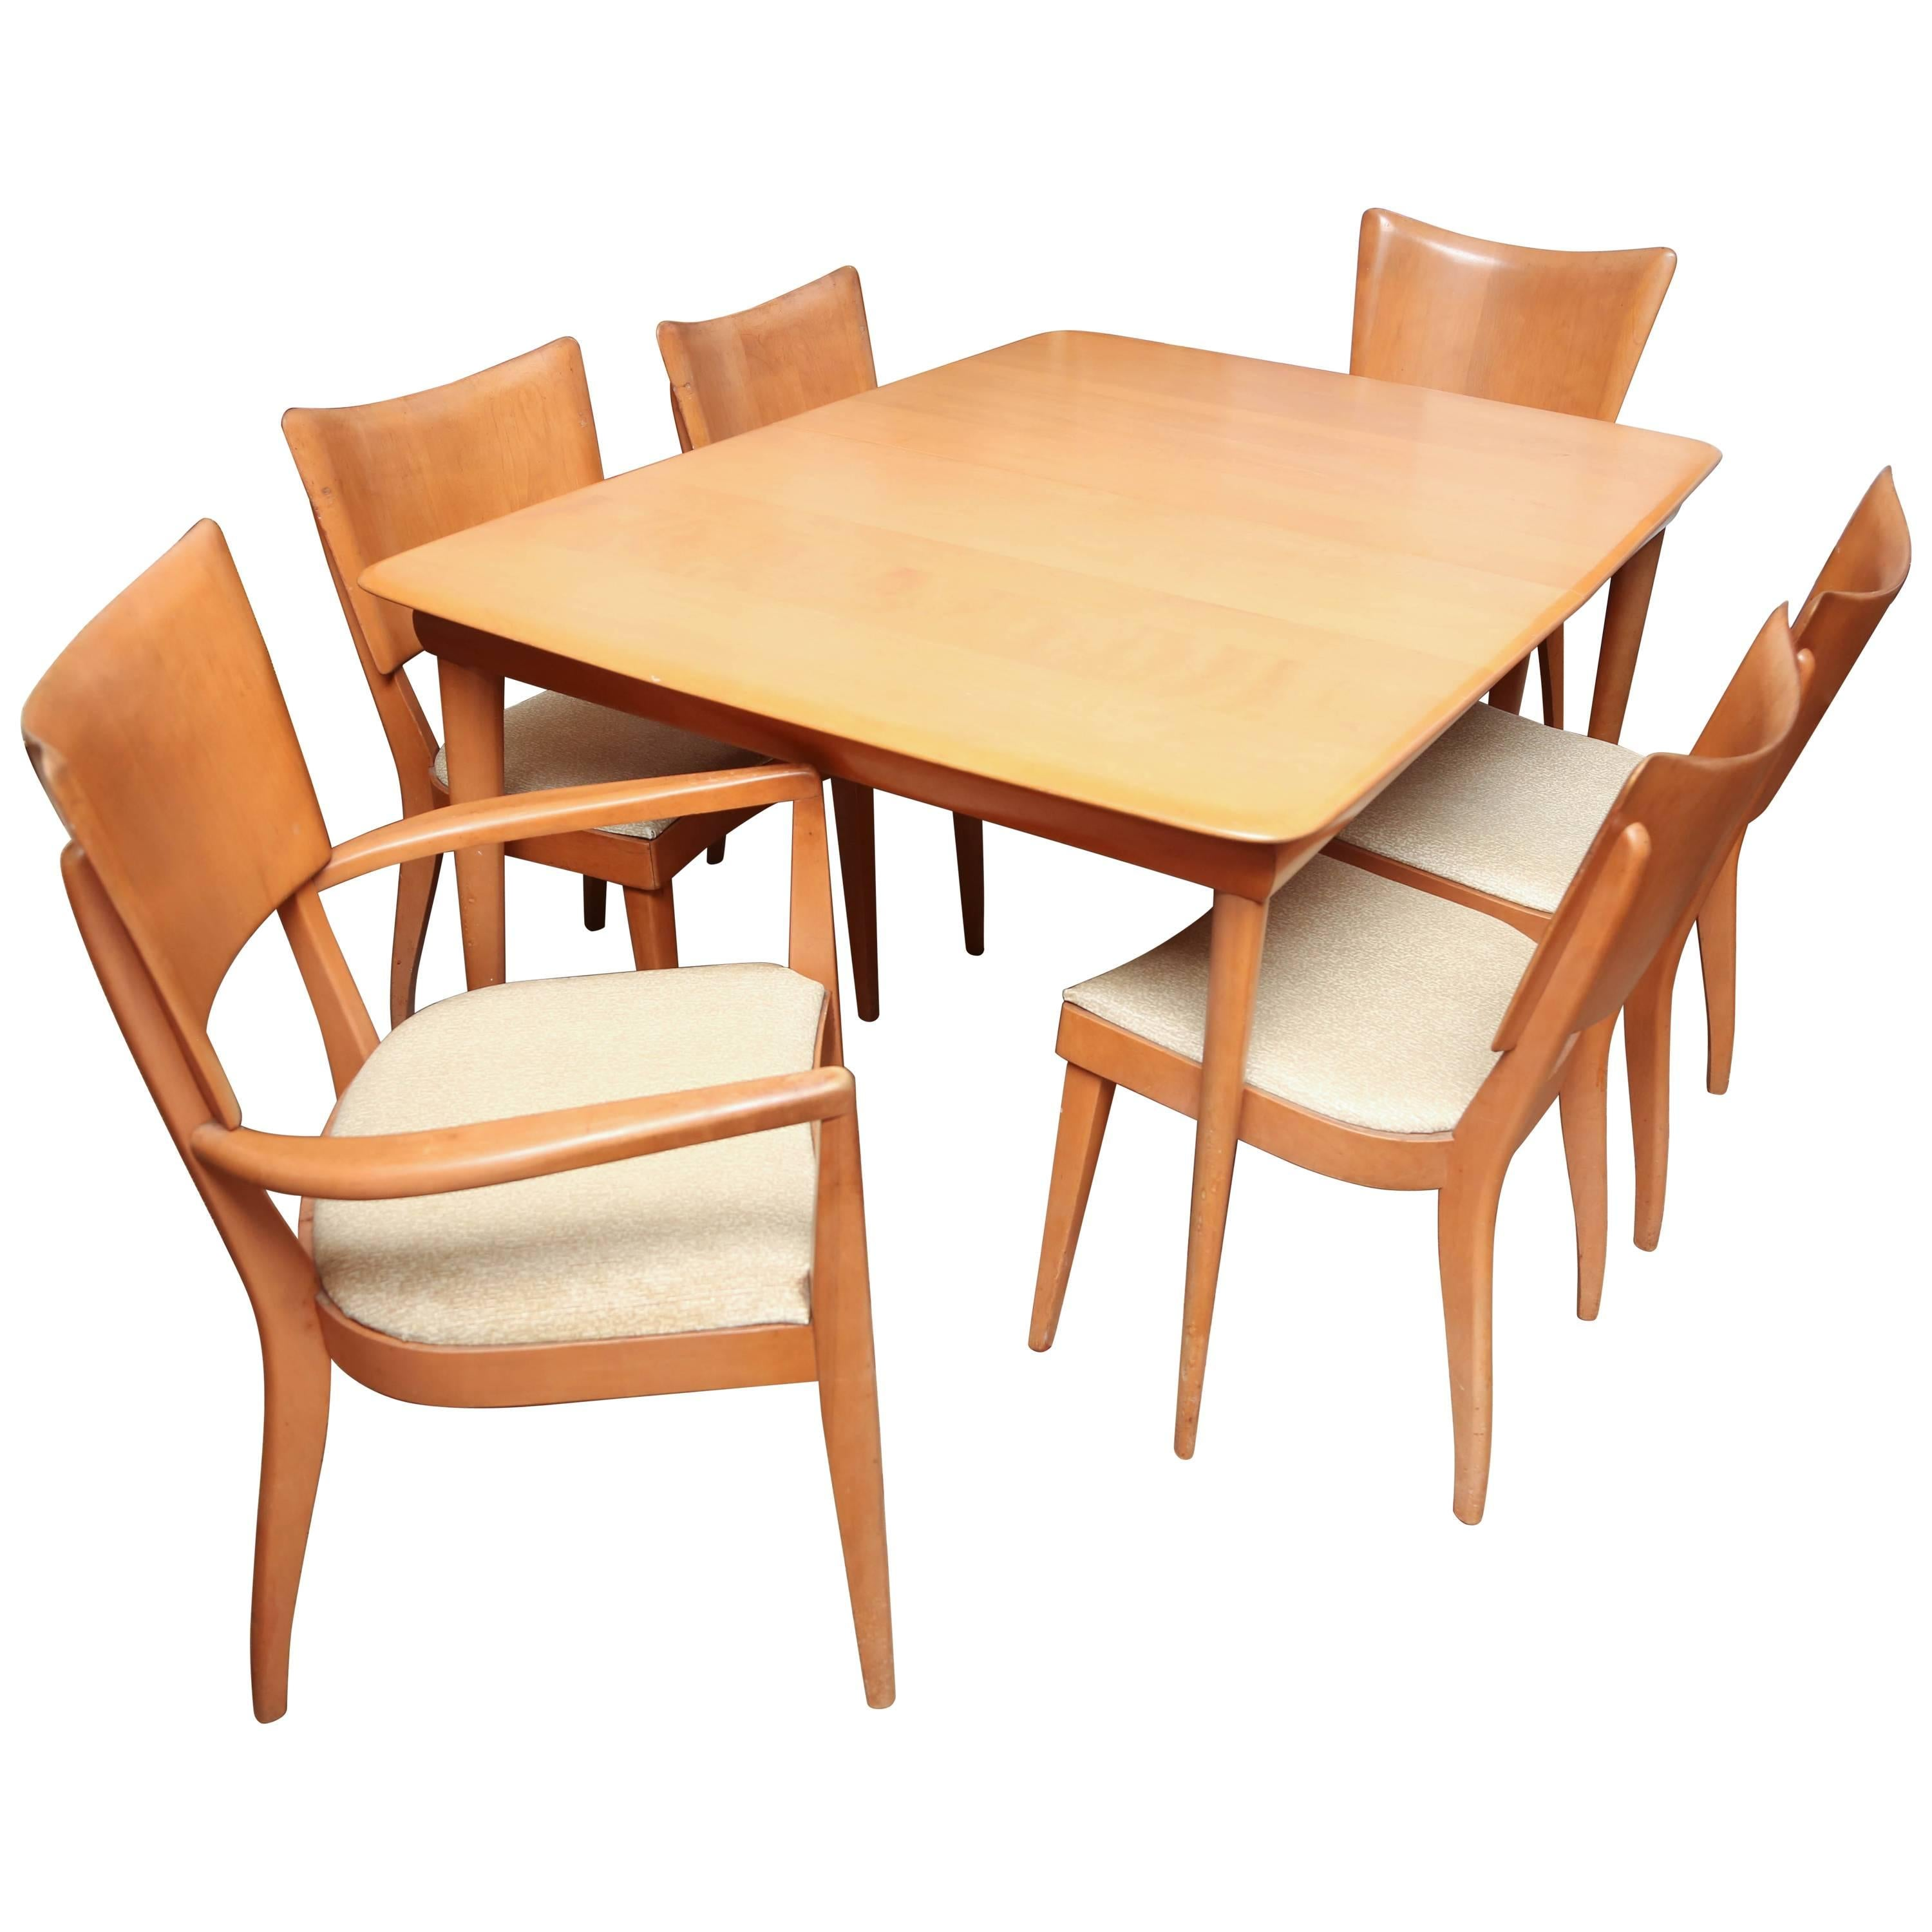 Bon Heywood Wakefield Dining Room Set With Six Chairs, 1960s, USA For Sale